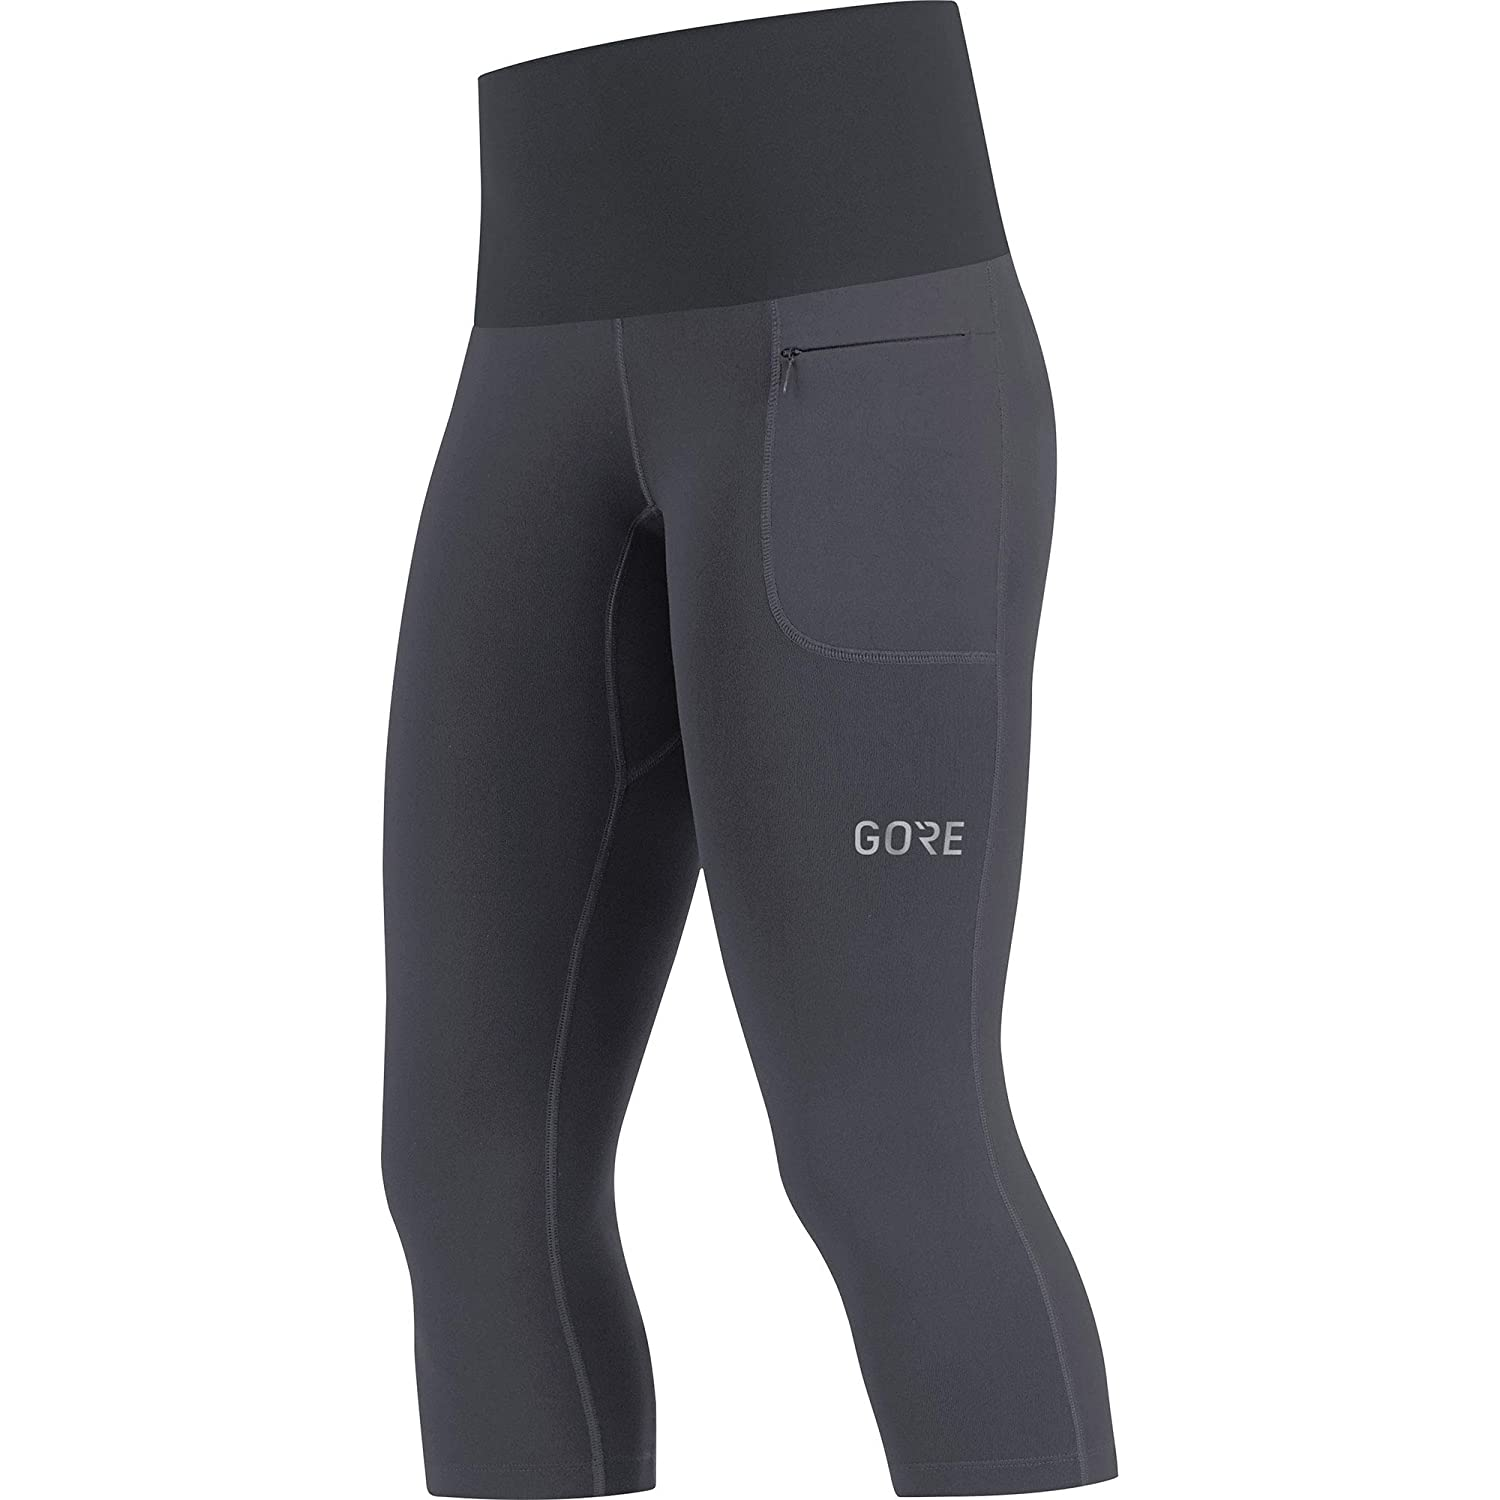 GORE Wear Women's Breathable 3/4-Length Running Tights, GORE Wear R5 Women 3/4 Tights, 100007 Gore Bike Wear